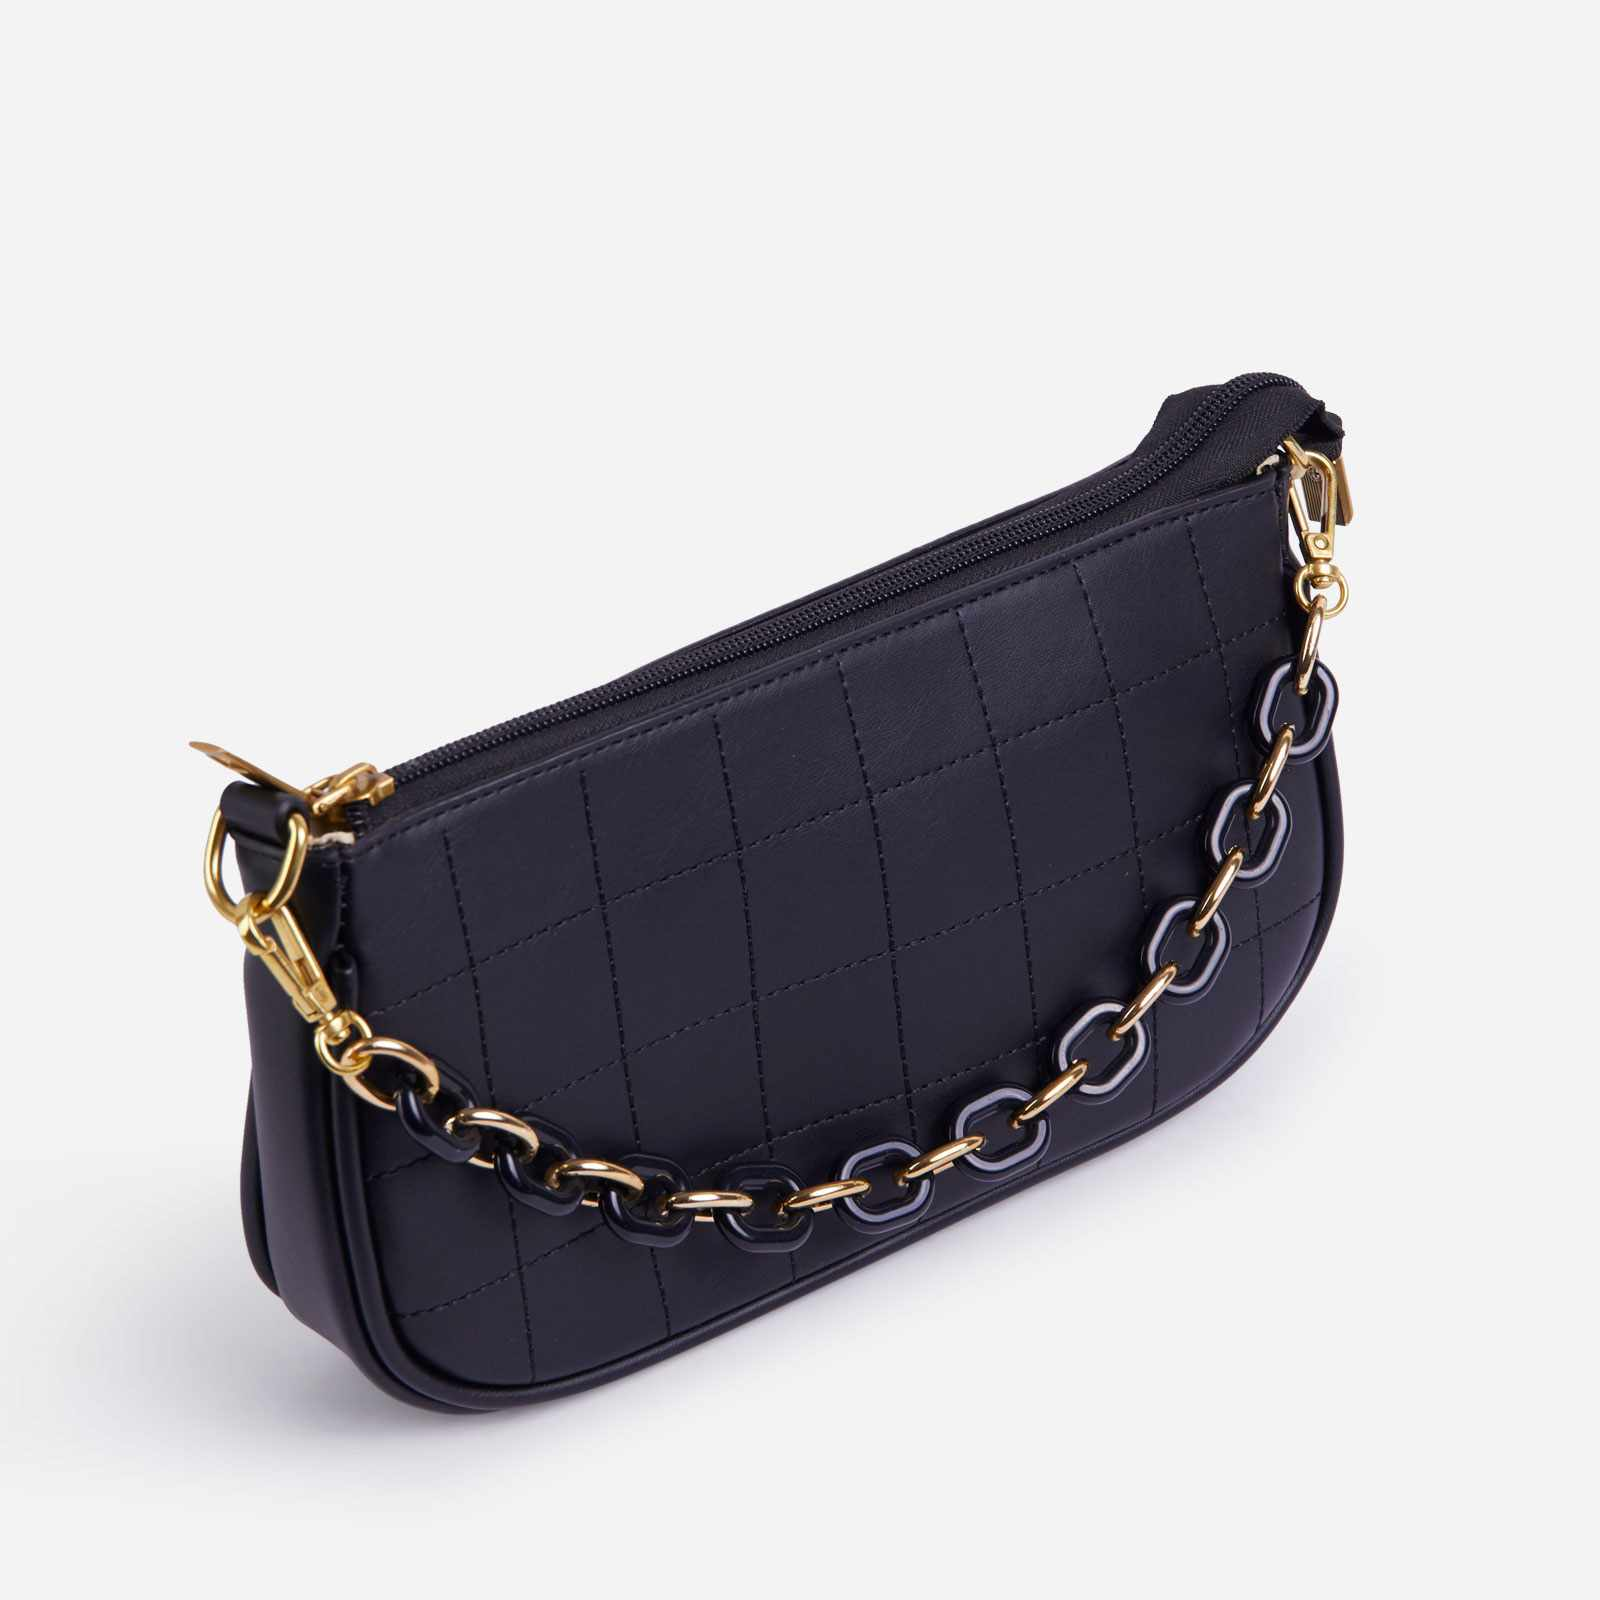 Chain Detail Baguette Bag In Black Faux Leather